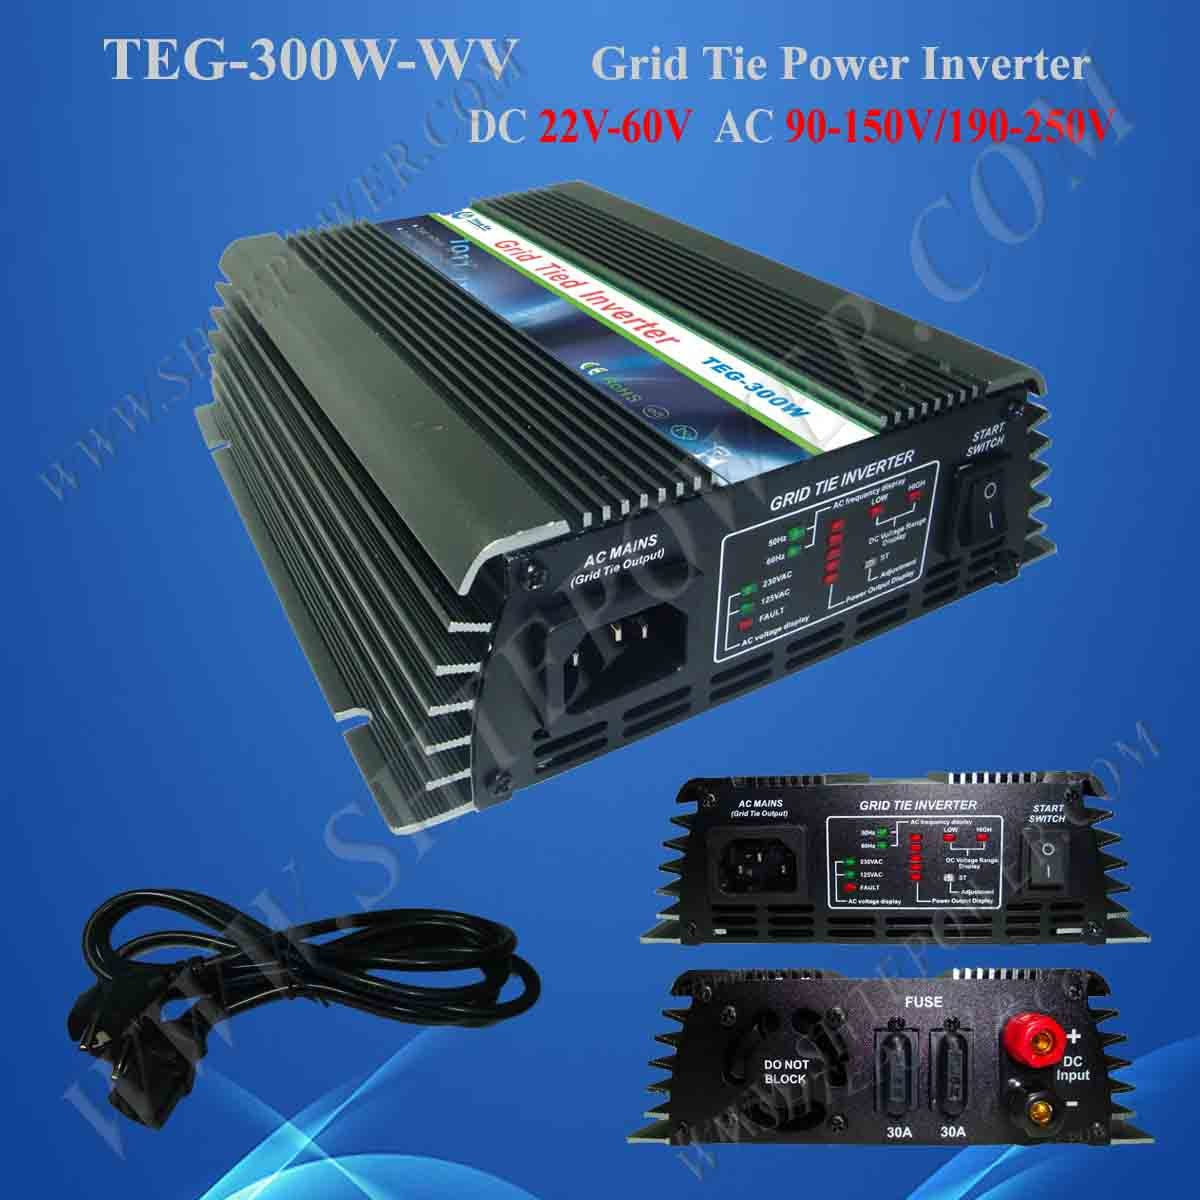 300W Power Inverter for Solar Panel On Grid System, DC 22V-60V to AC 90V-150V, One Year Warranty, High Quality